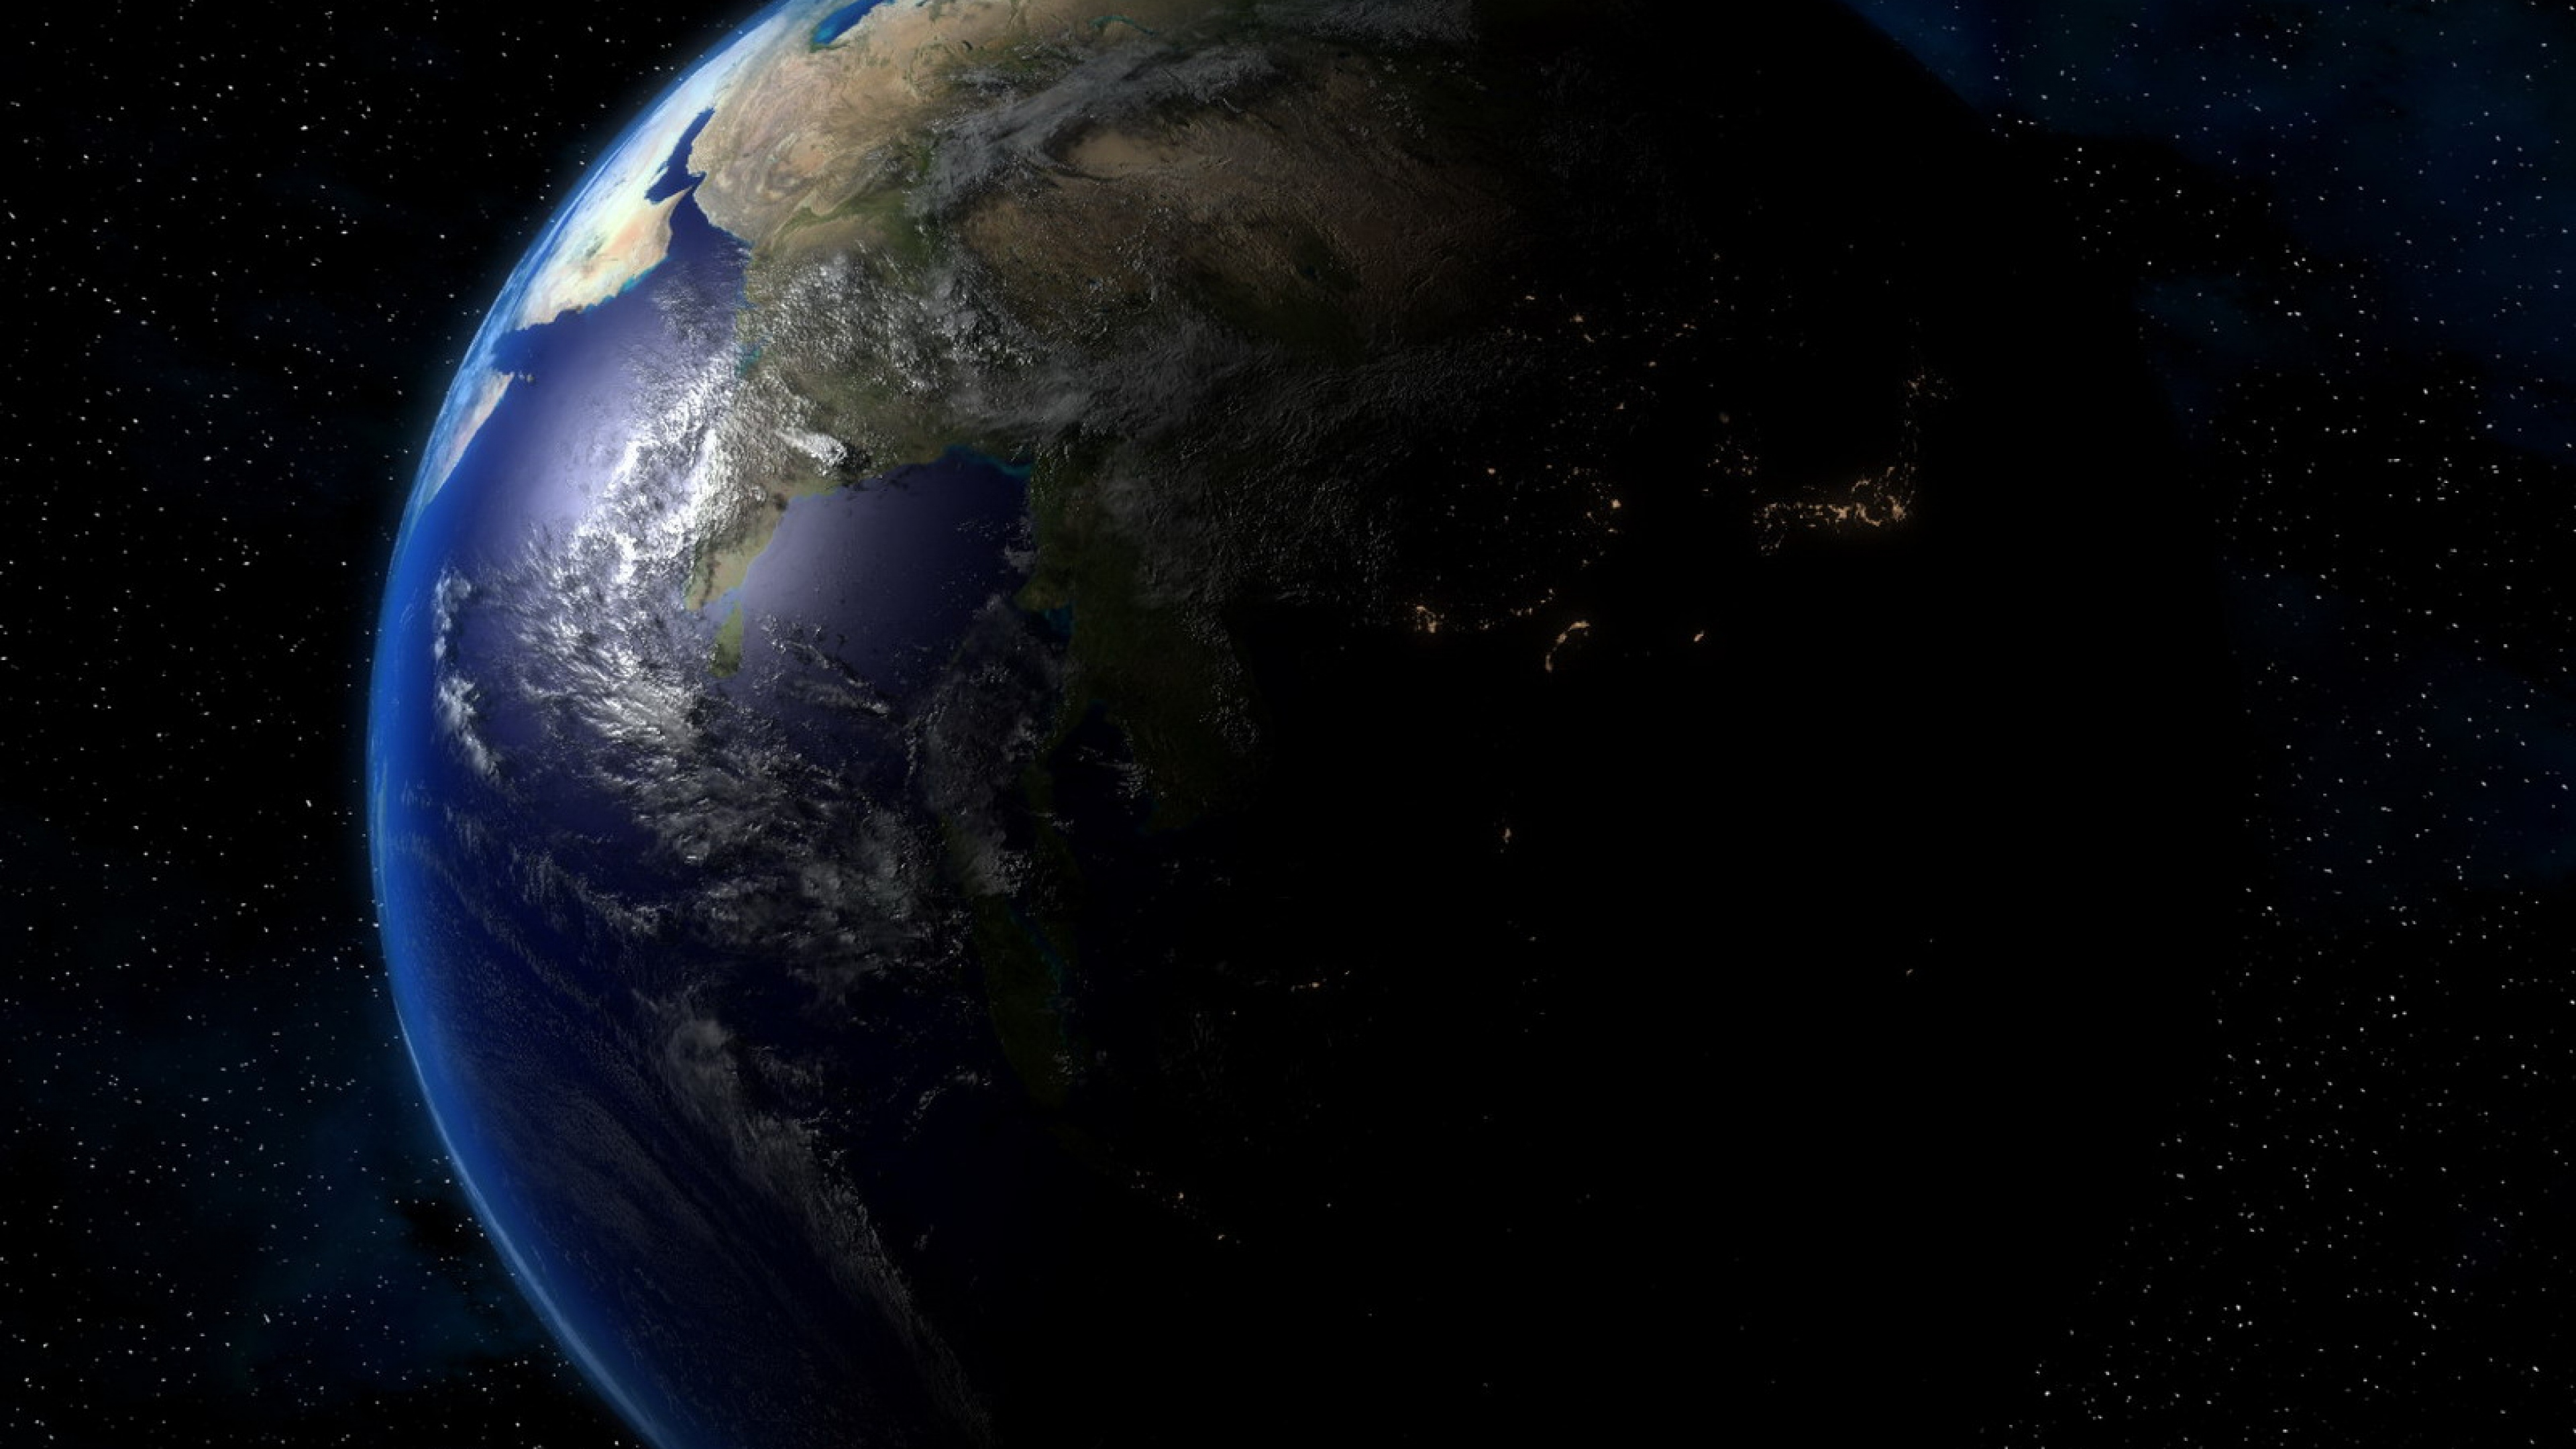 4k planet earth wallpapers high quality download free - 4k live wallpaper for pc ...